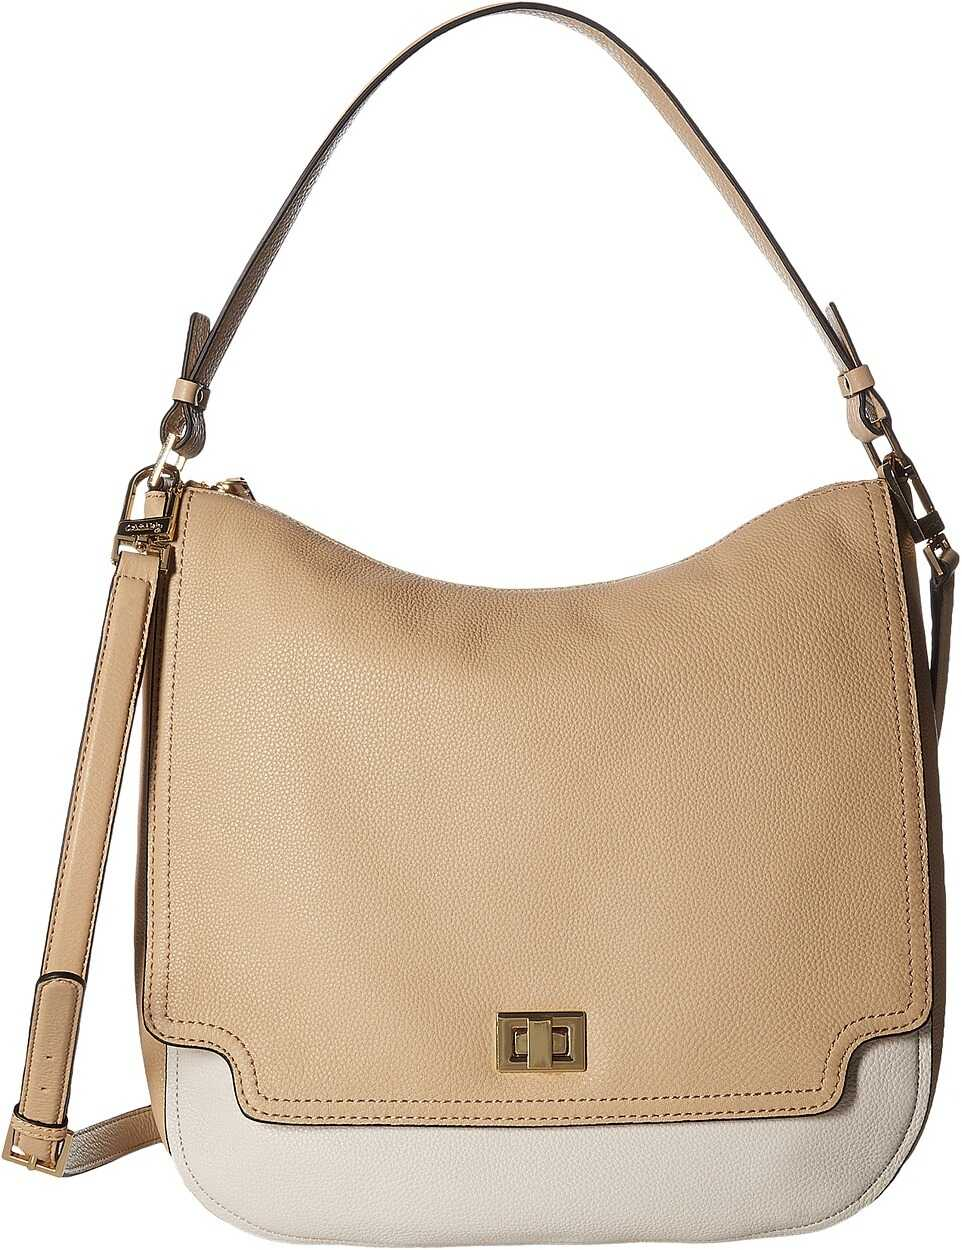 Calvin Klein Ashley Pebble Hobo White/Nude